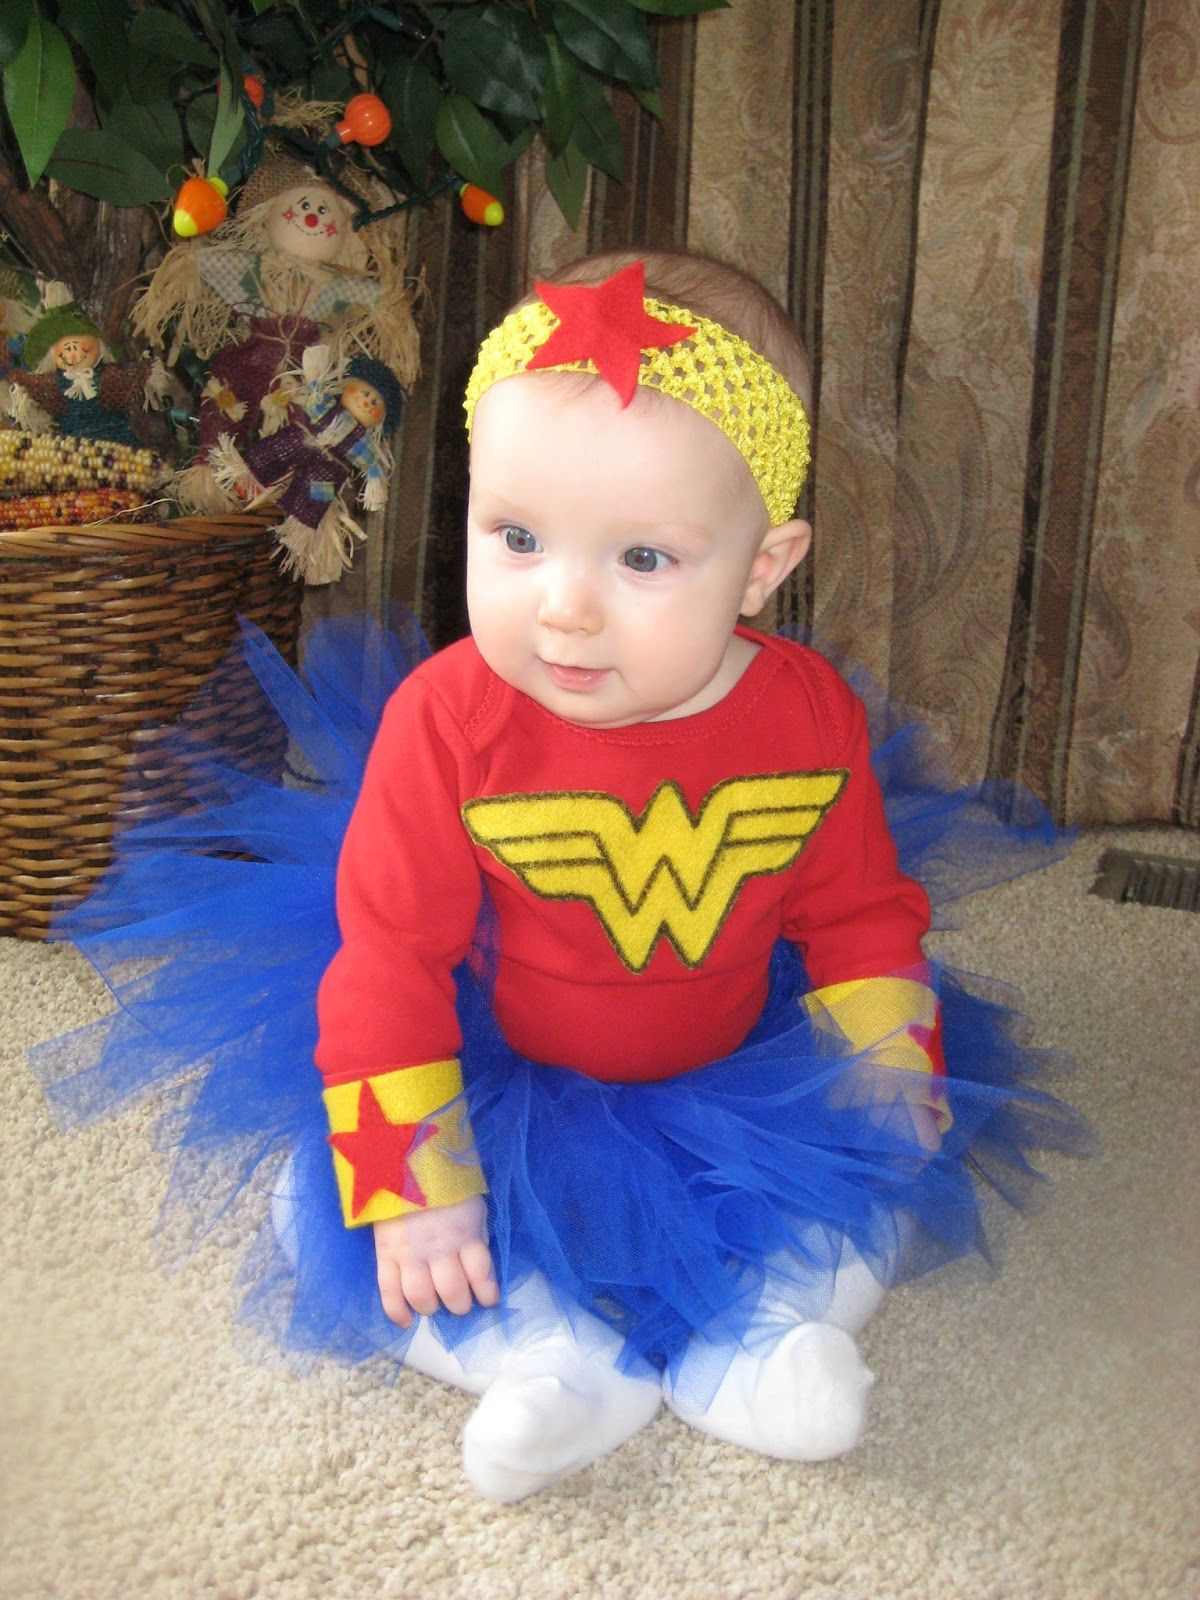 diy halloween costumes for kids and toddlers wonder woman wwwsweetlittleonesblogcom - Toddler And Baby Halloween Costume Ideas